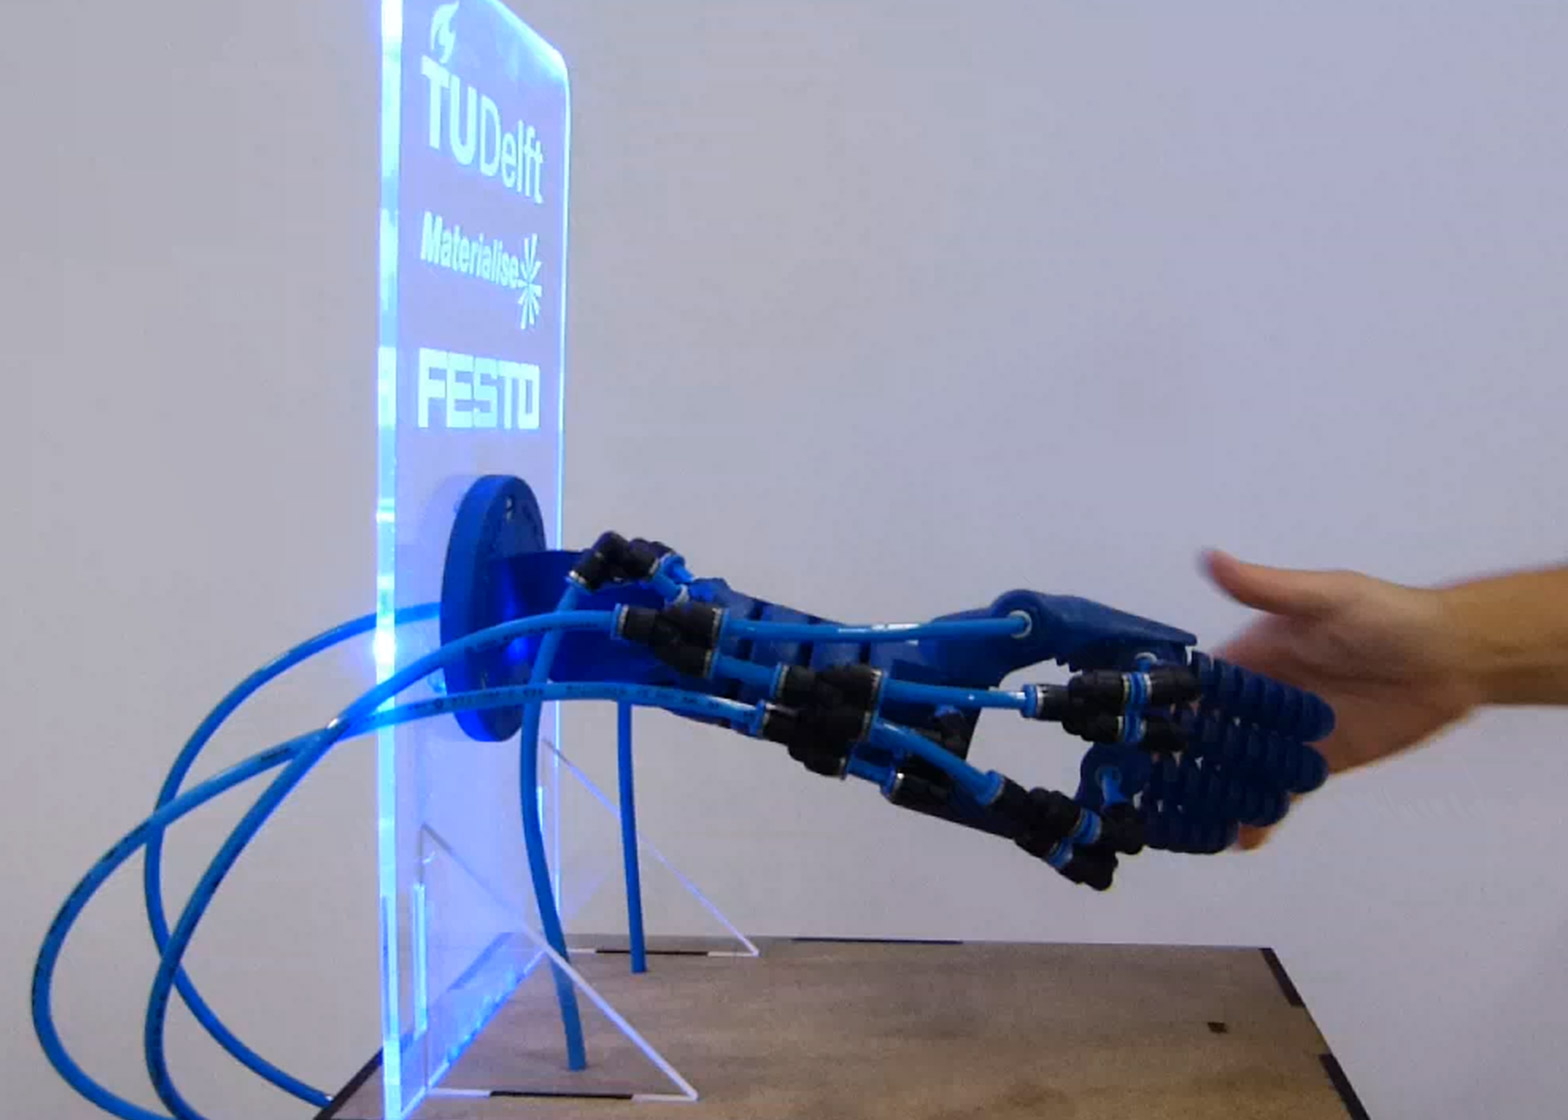 Rob Scharff S Soft Robotics Hand Responds To A Human Grip